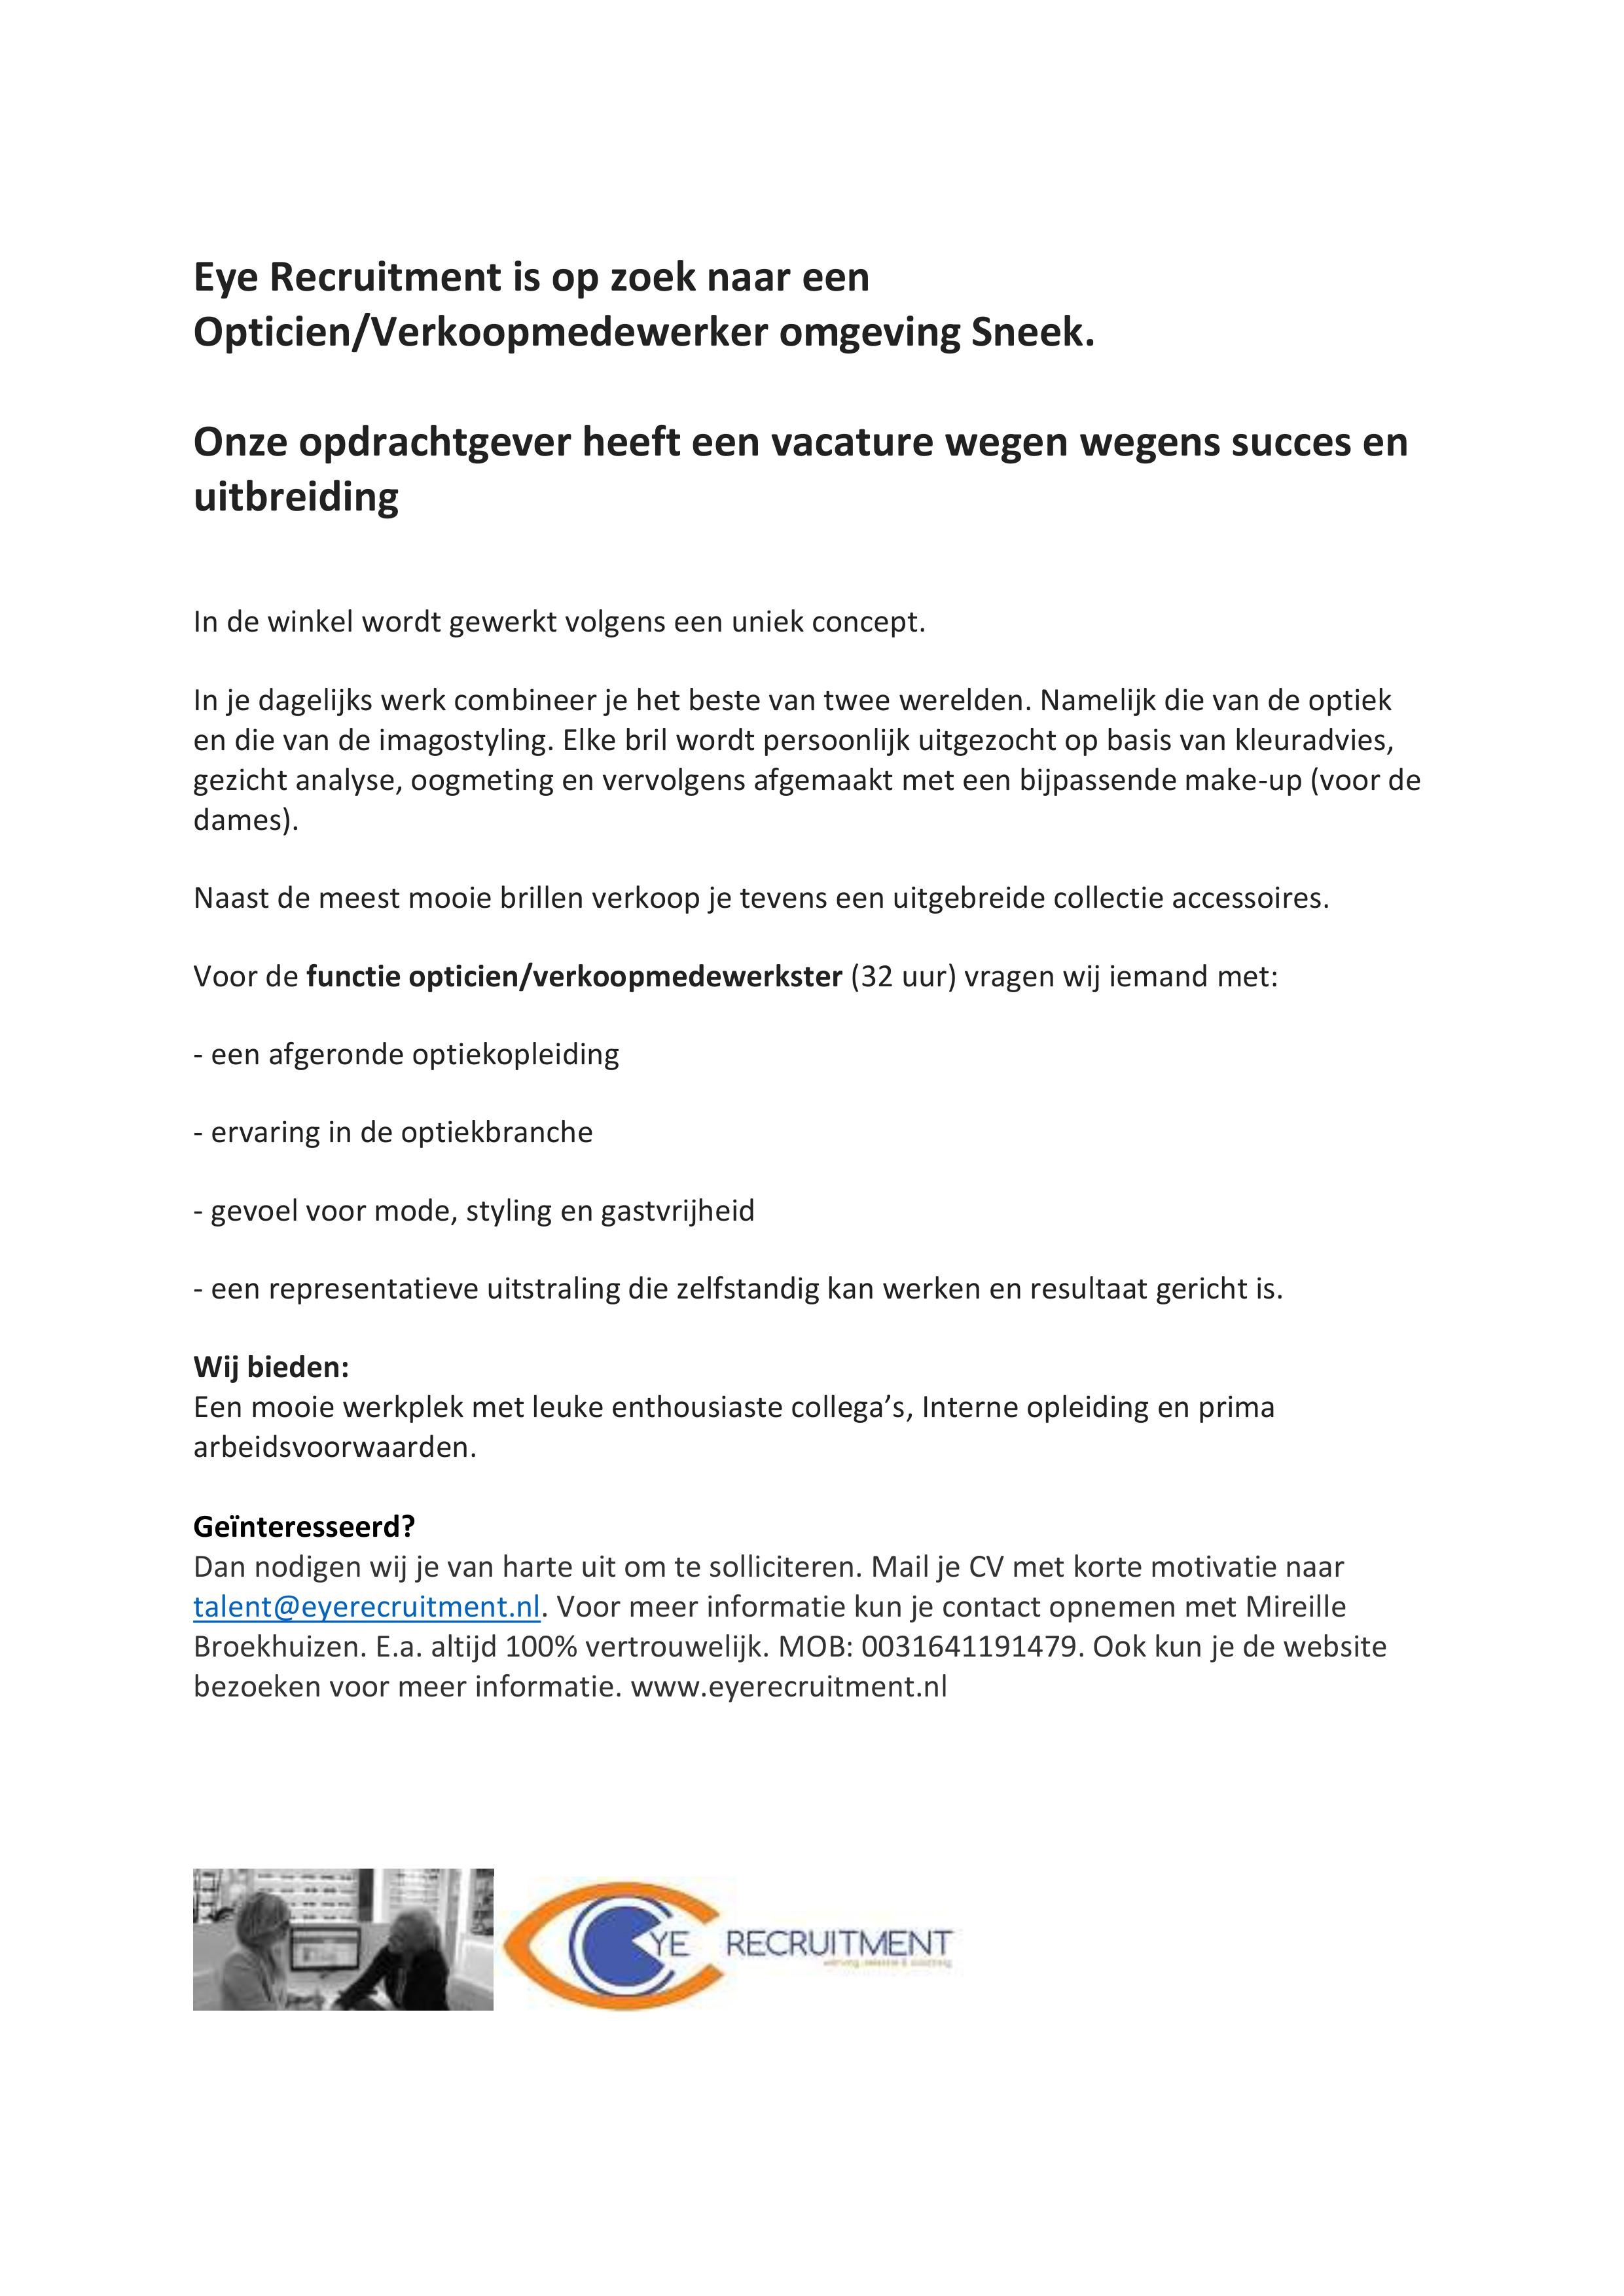 vacature-opticien-nelleke-mulder